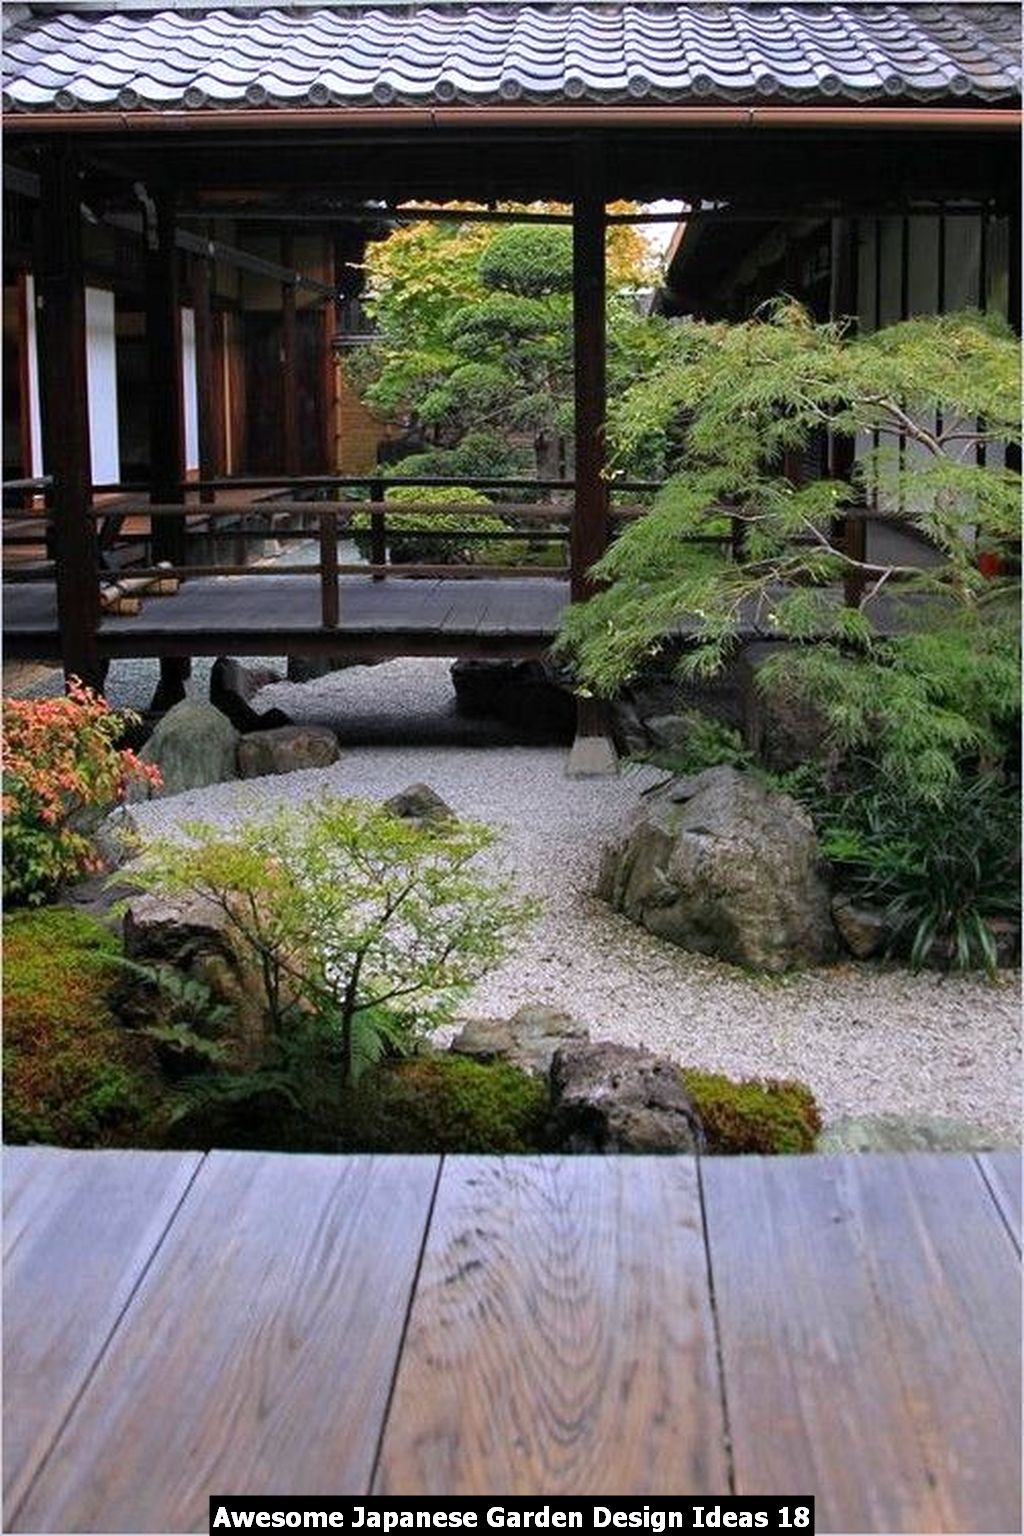 Awesome Japanese Garden Design Ideas 18